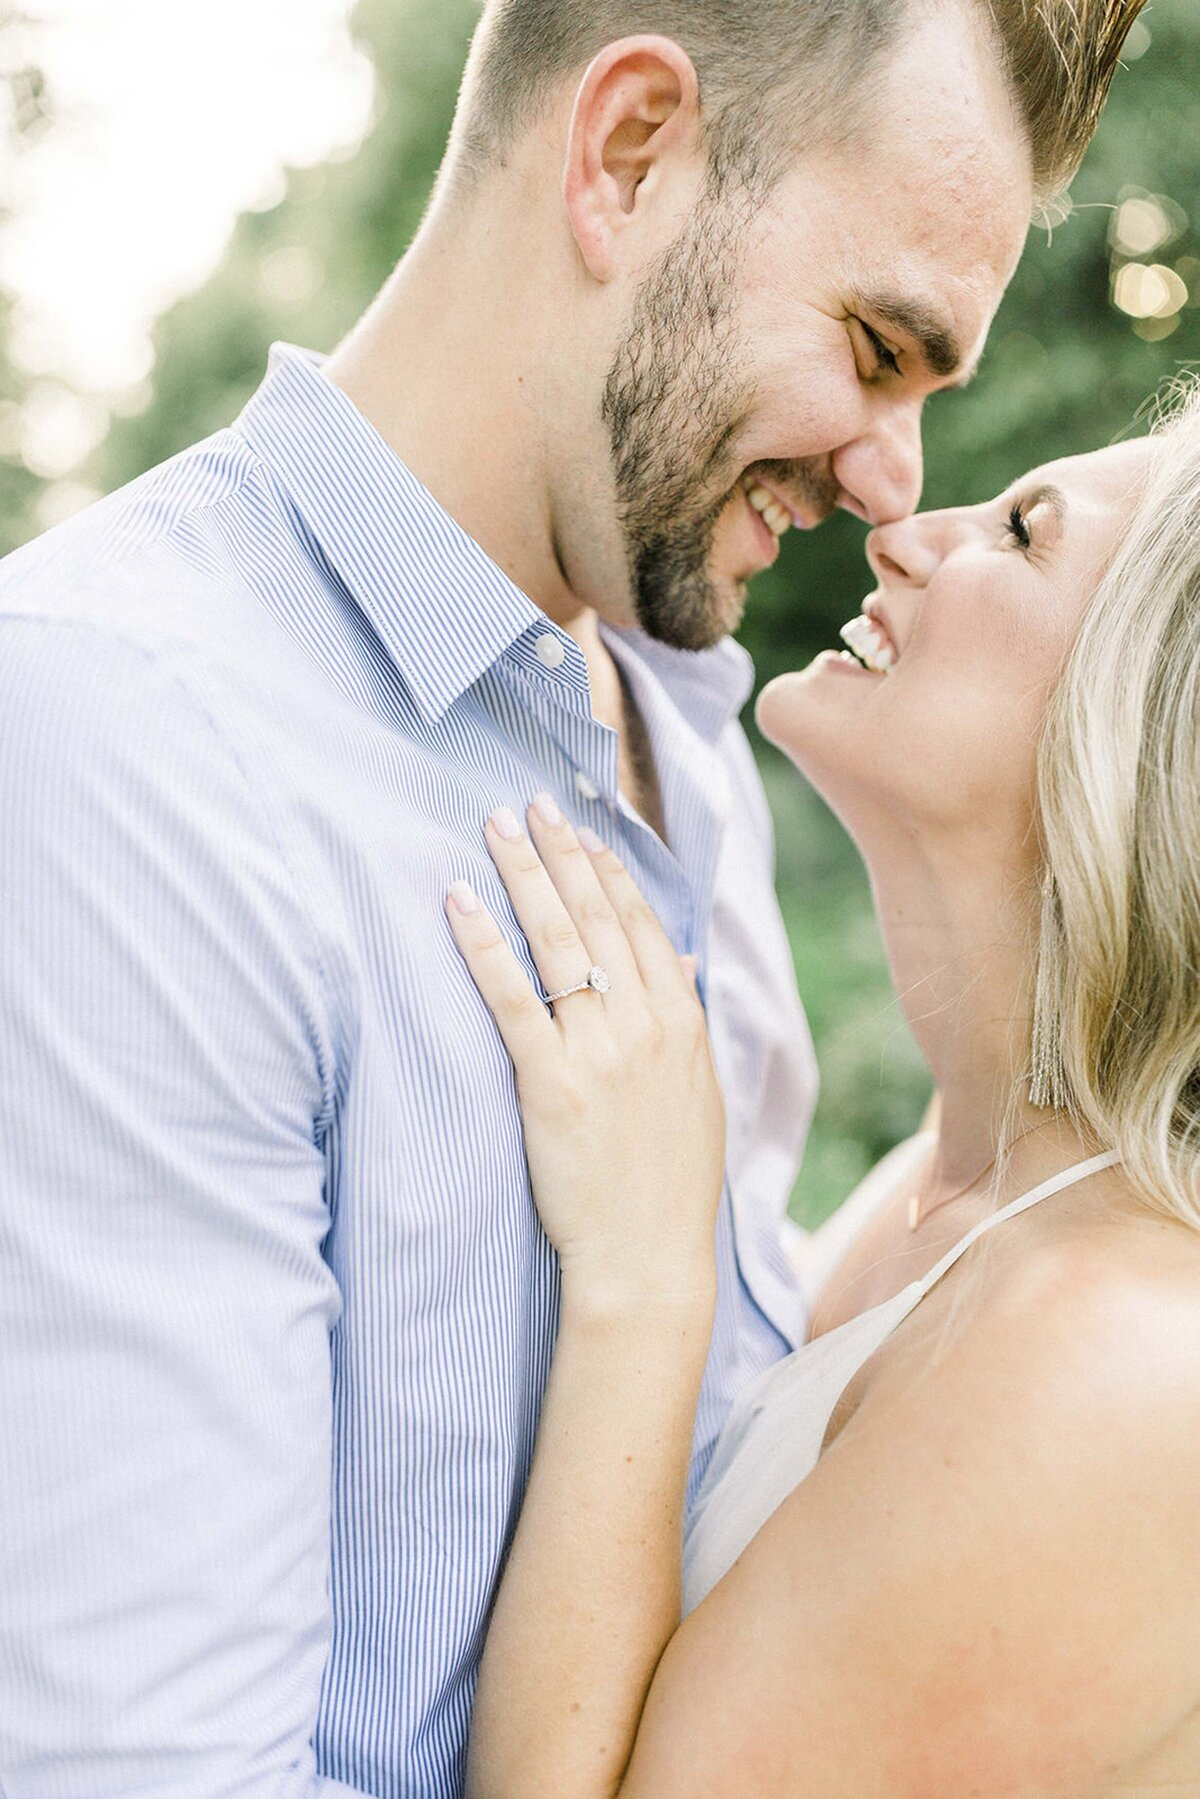 st-louis-engaged-couple-tracy-parrett